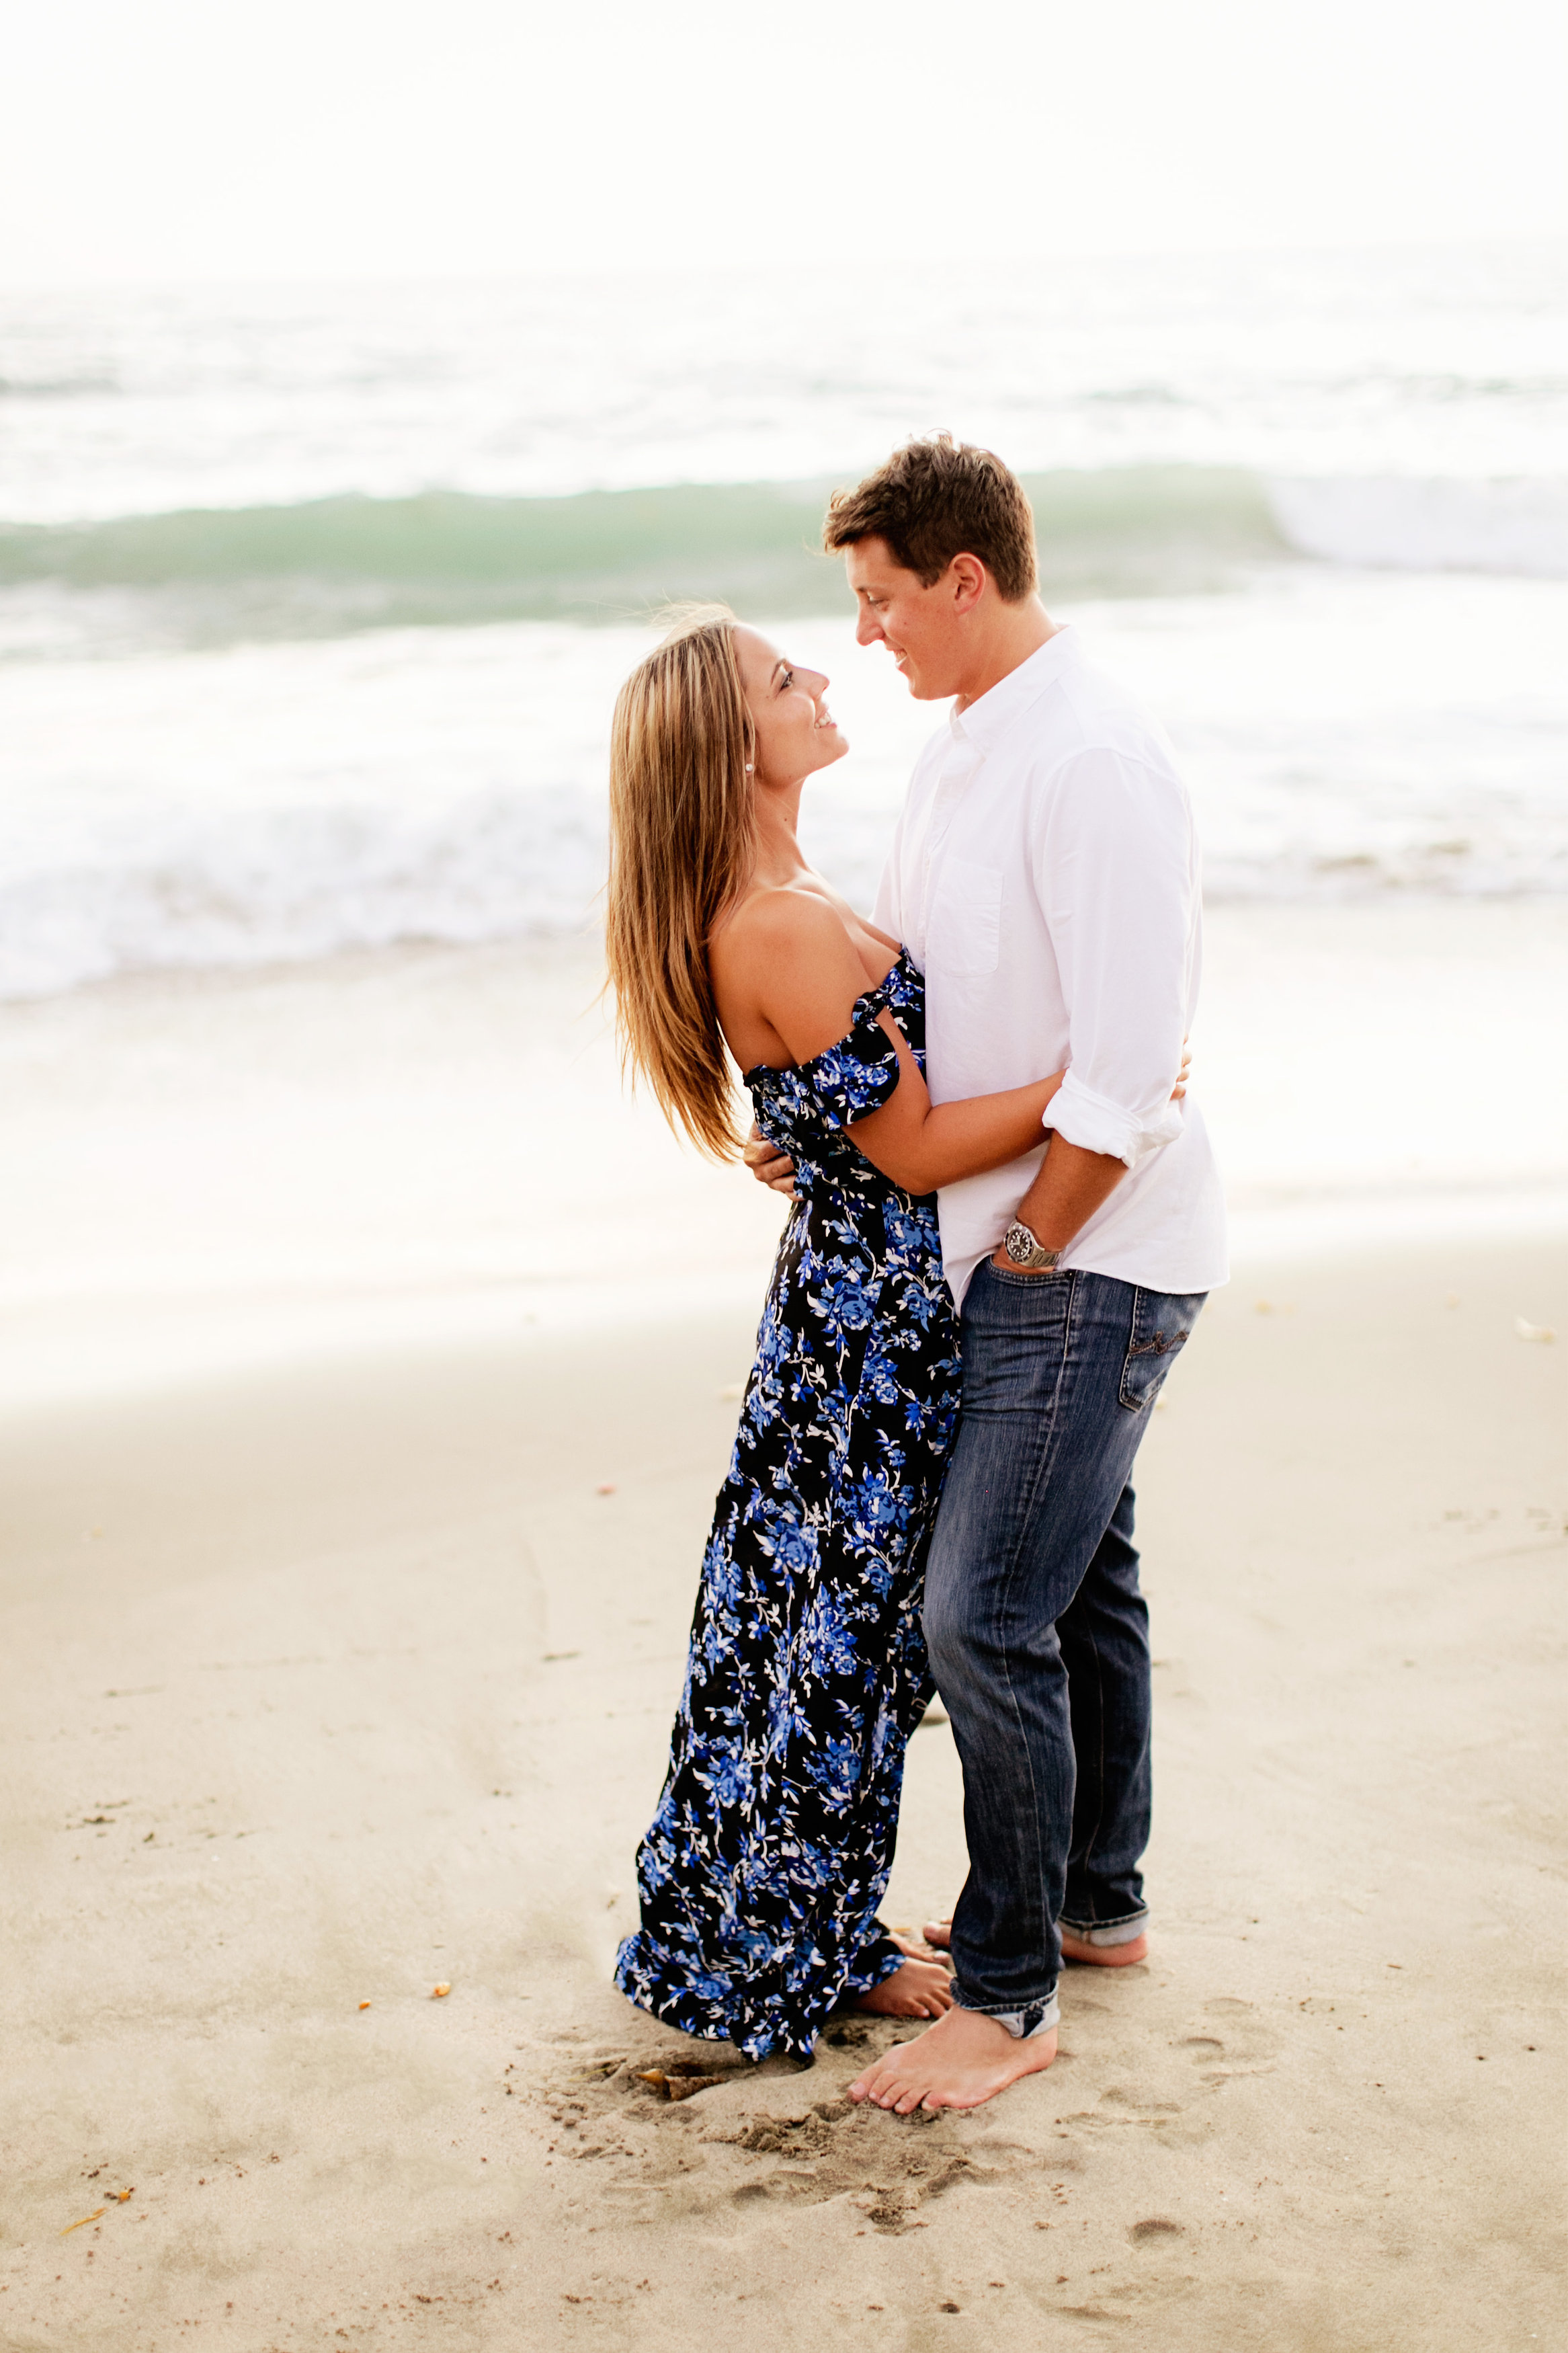 In Blue Fl Maxi Dress For Engagement Pictures